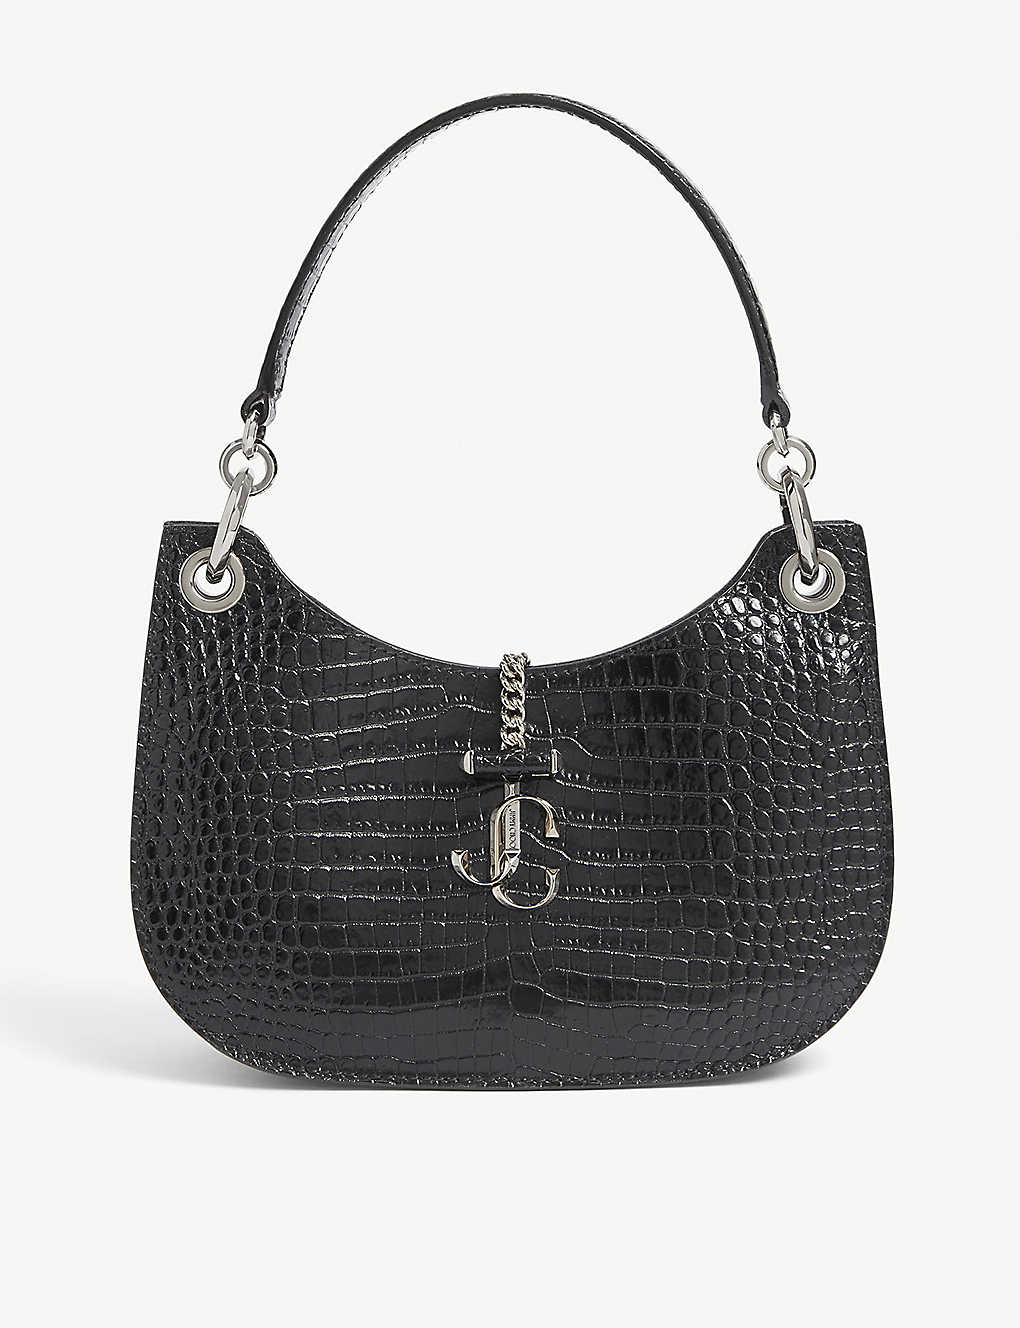 JIMMY CHOO: Varenne small crocodile-embossed leather hobo bag